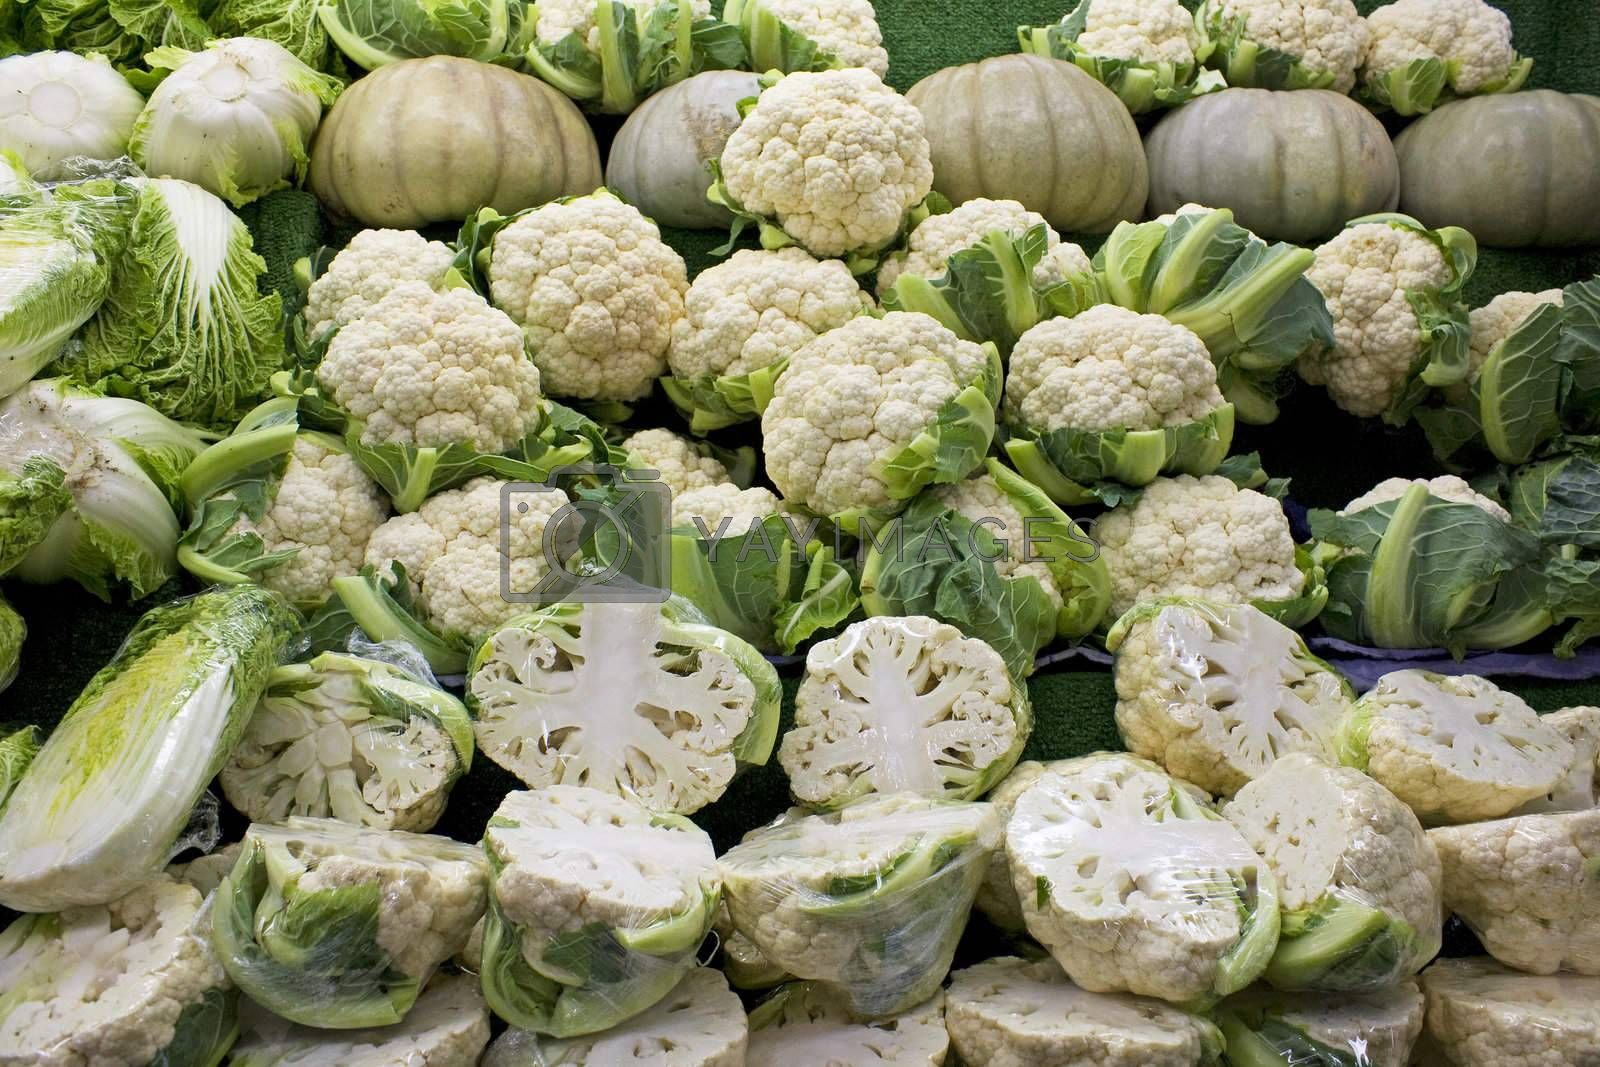 Royalty free image of Fresh Vegetables for Sale by shariffc